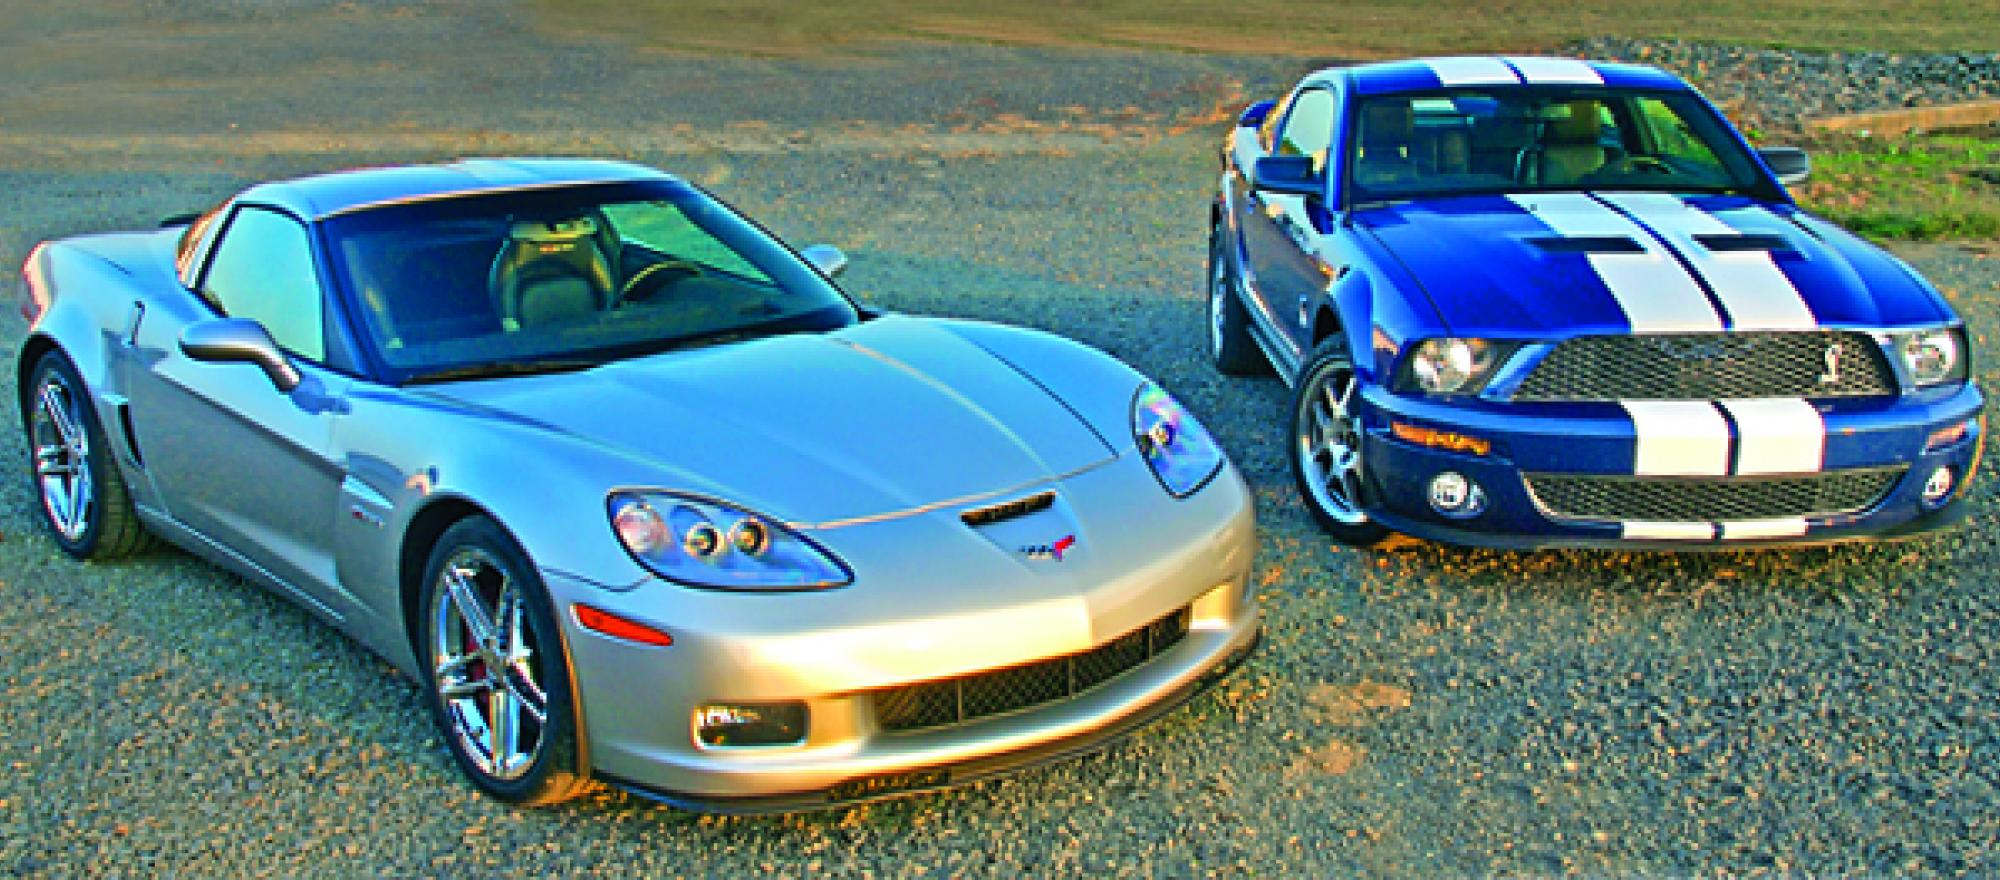 The Chevrolet Corvette Z06 and the Ford Shelby GT500 Cobra